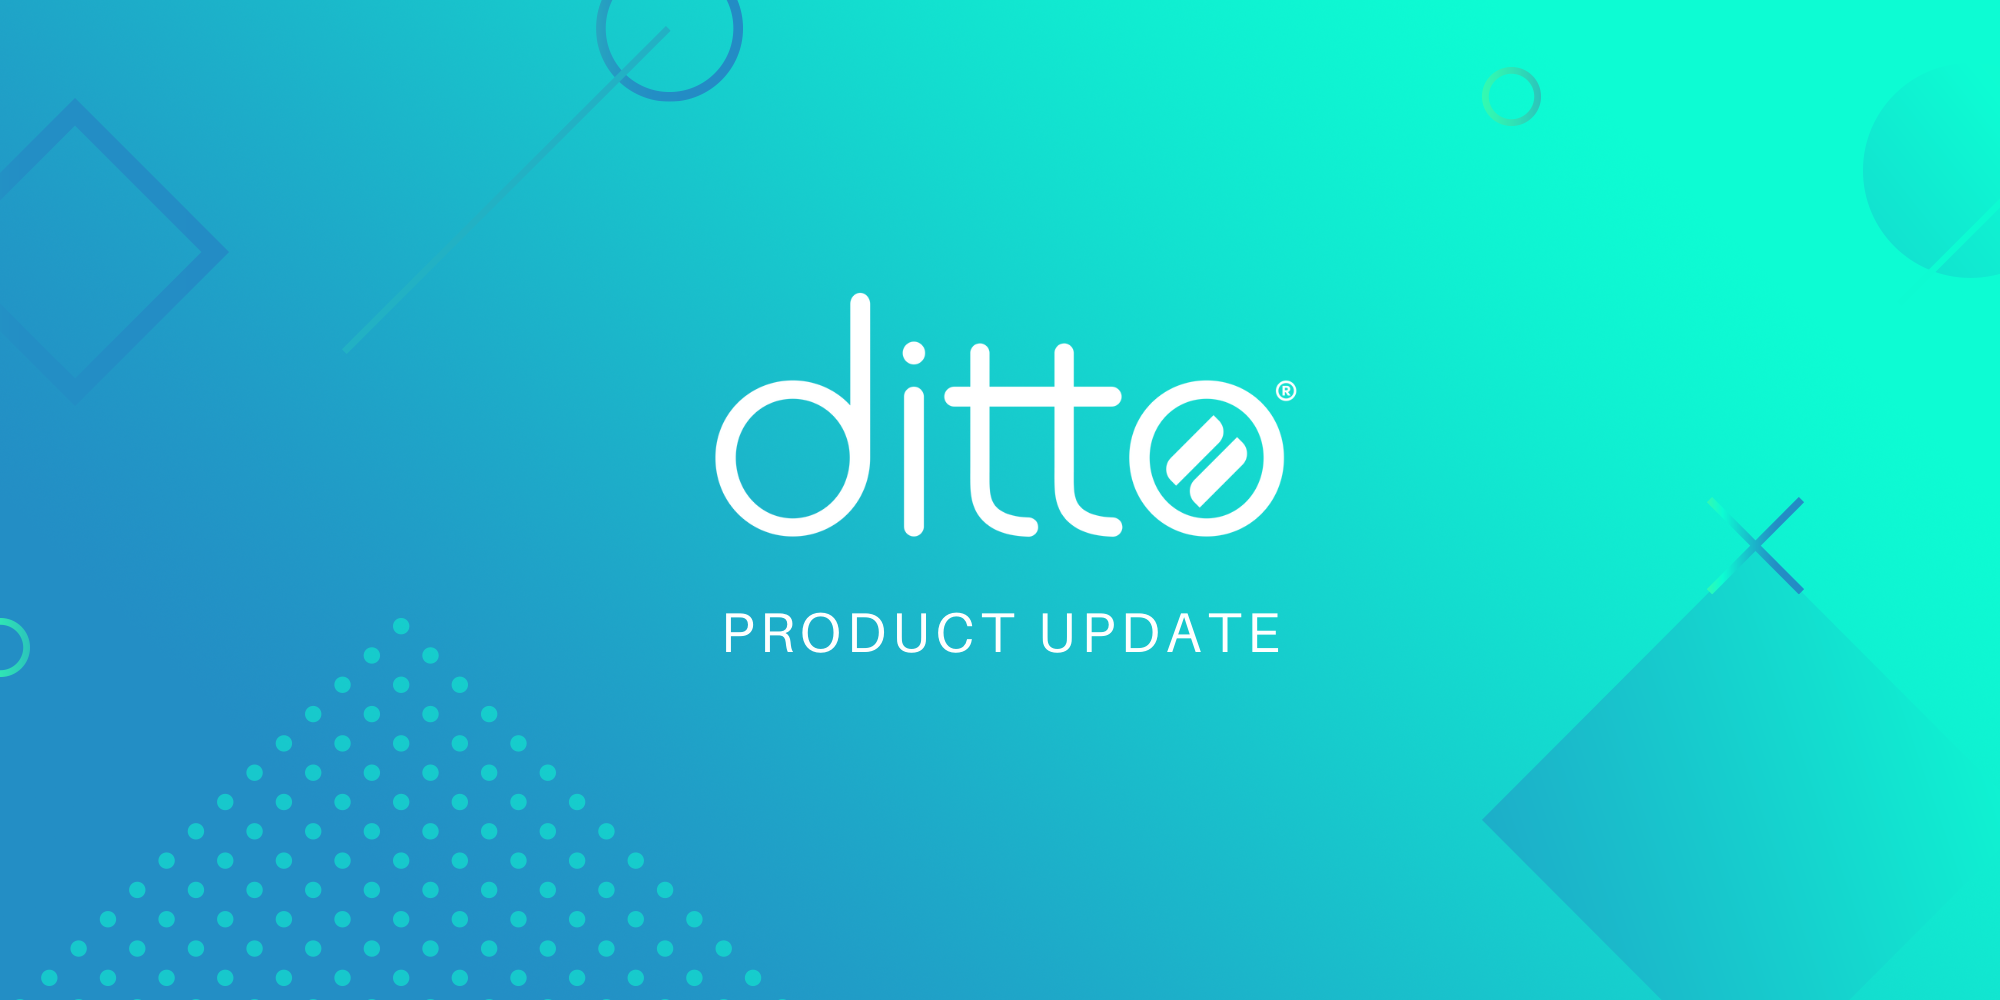 Ditto Update Improves Mobile UI, Digital Signage Preview Function, Jamf School Support and More